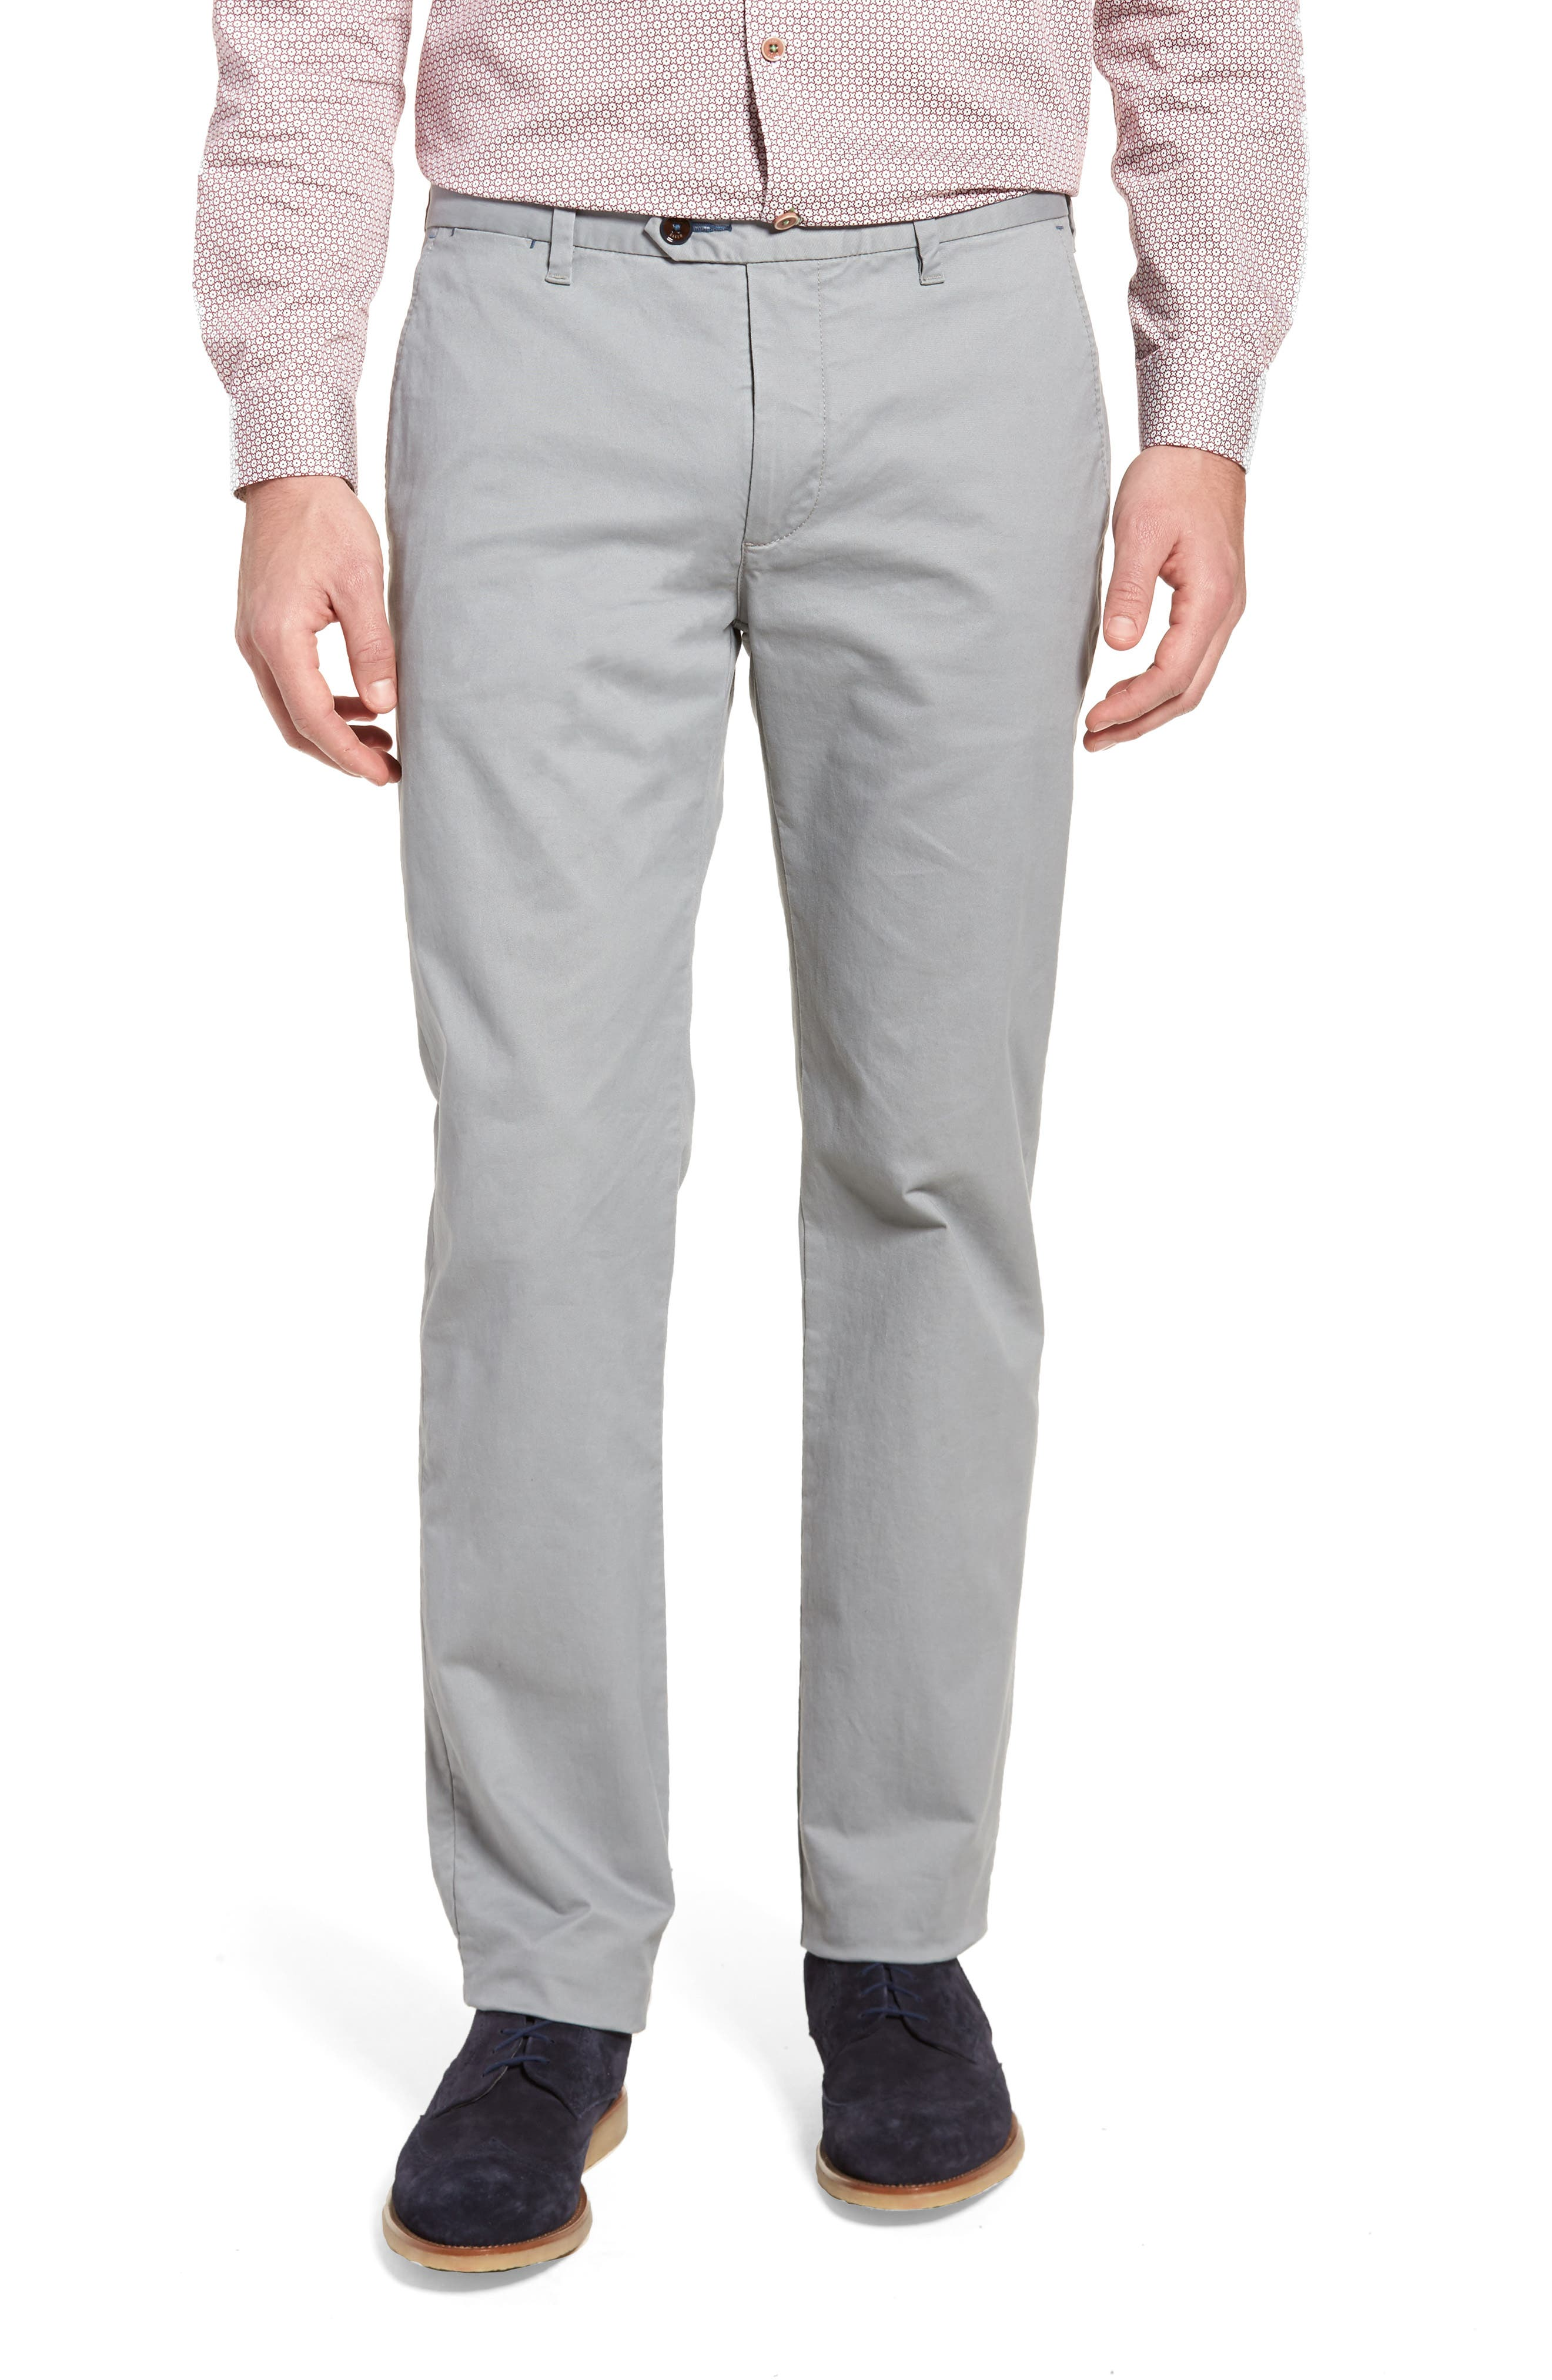 Proctt Flat Front Stretch Solid Cotton Pants,                         Main,                         color, Light Grey